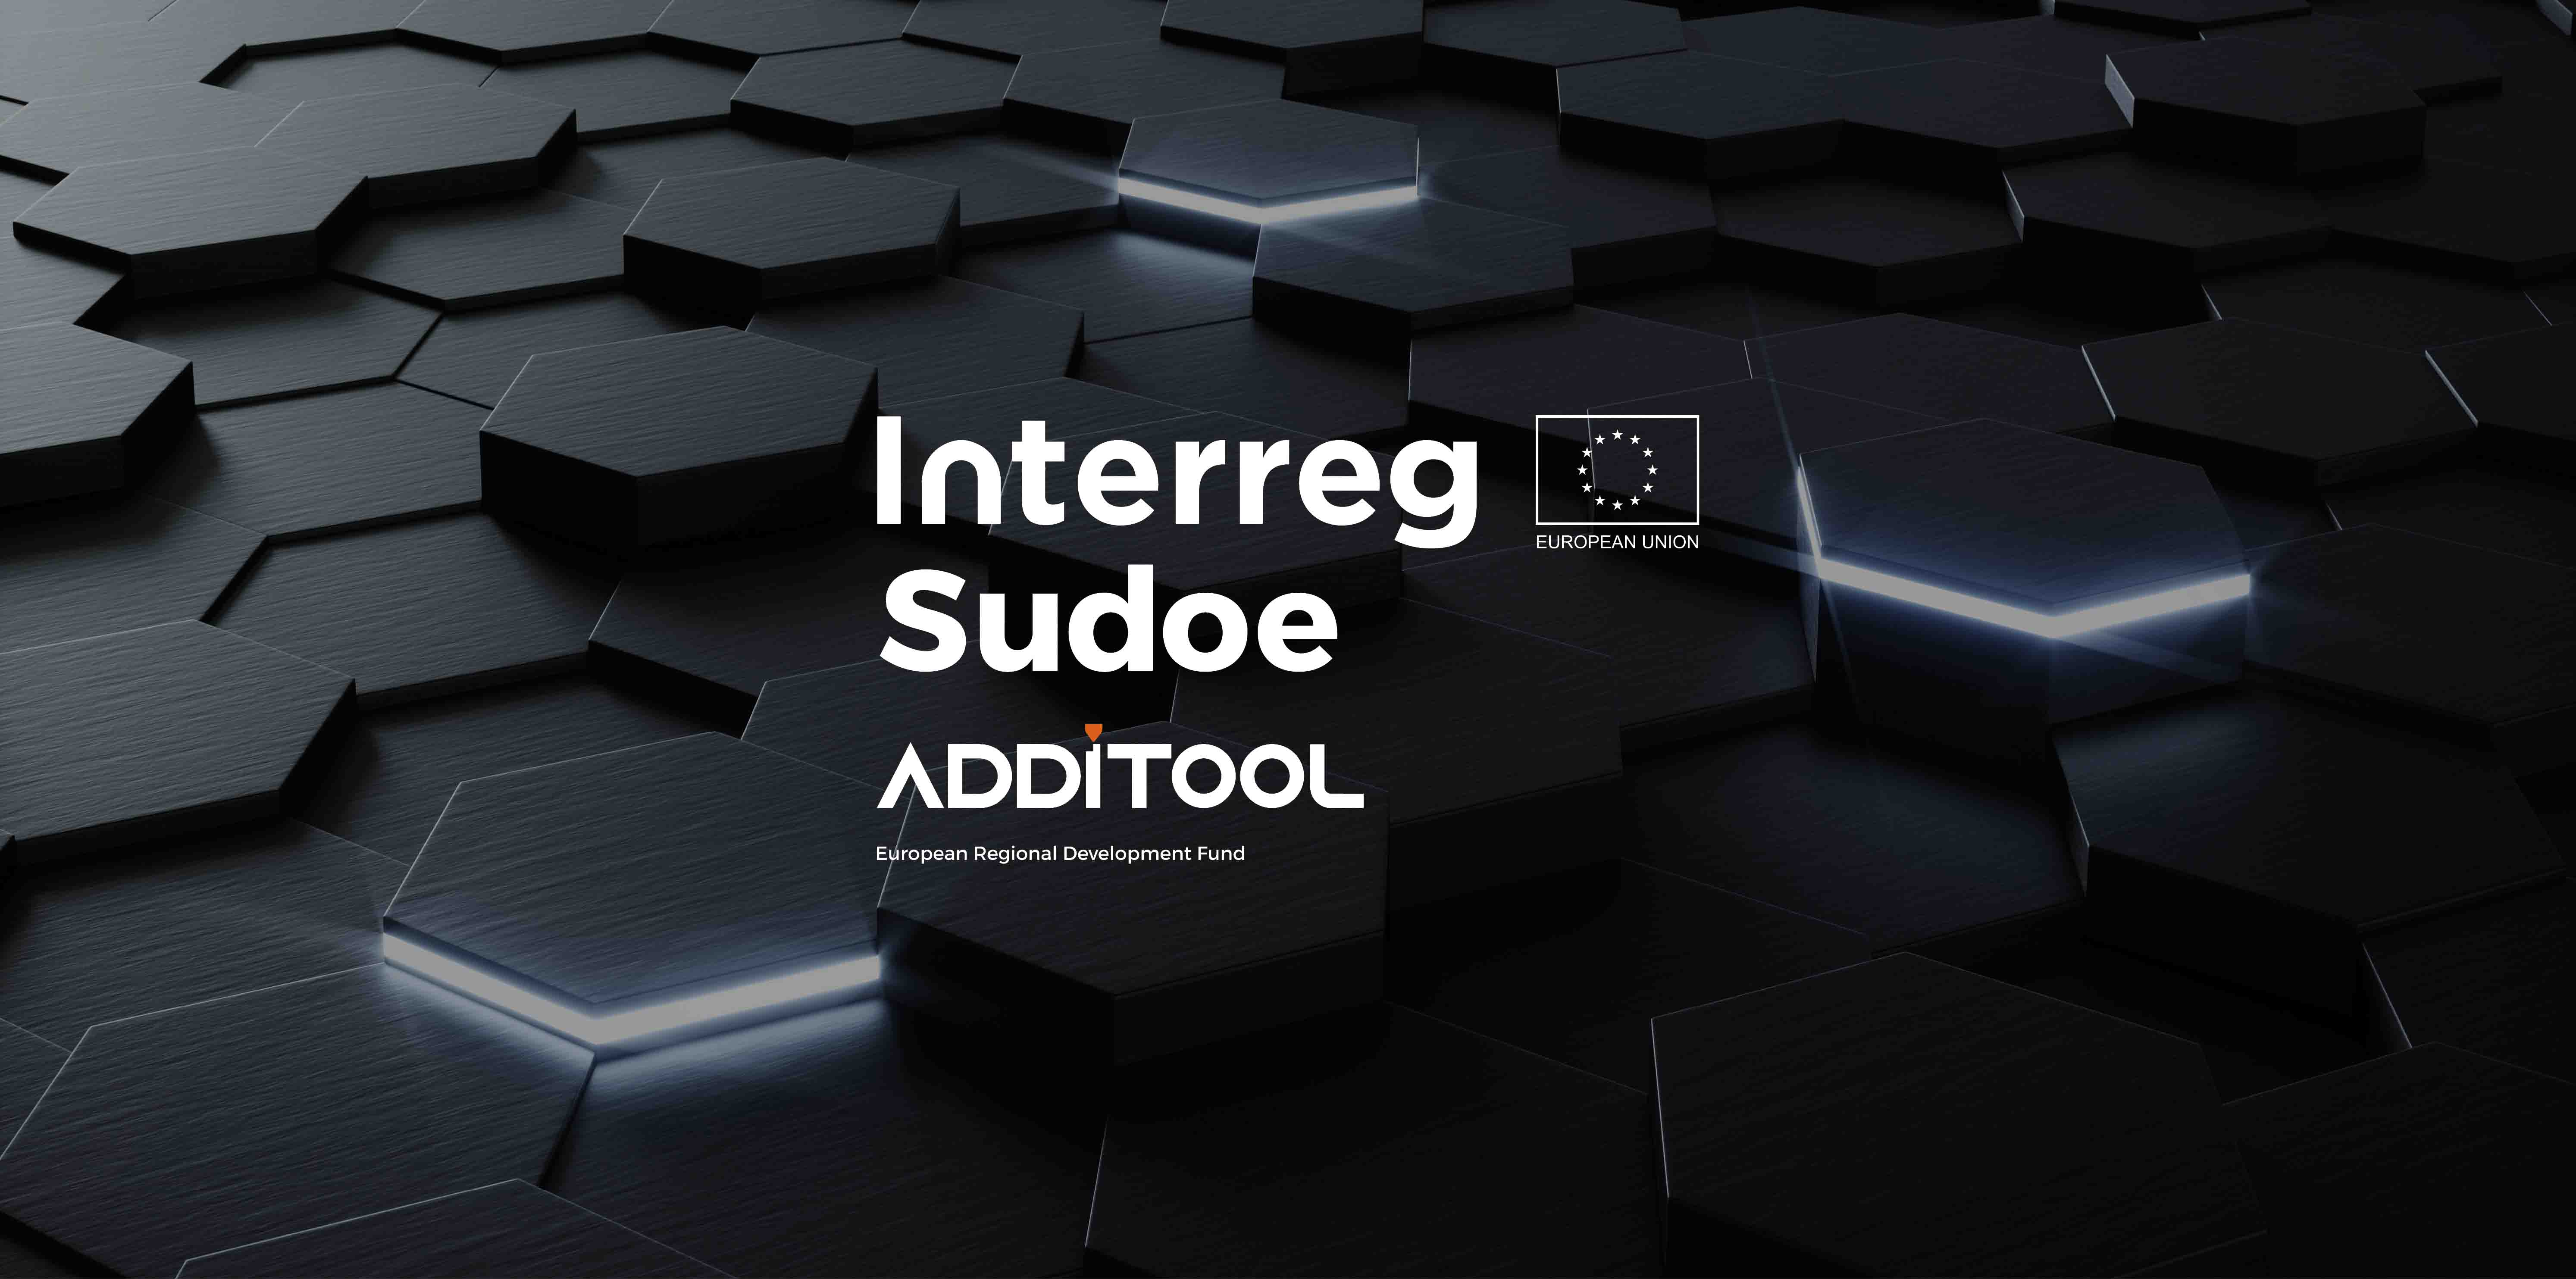 Kick-off of Project ADDITOOL for implementation of metal additive manufacturing in the tooling sector